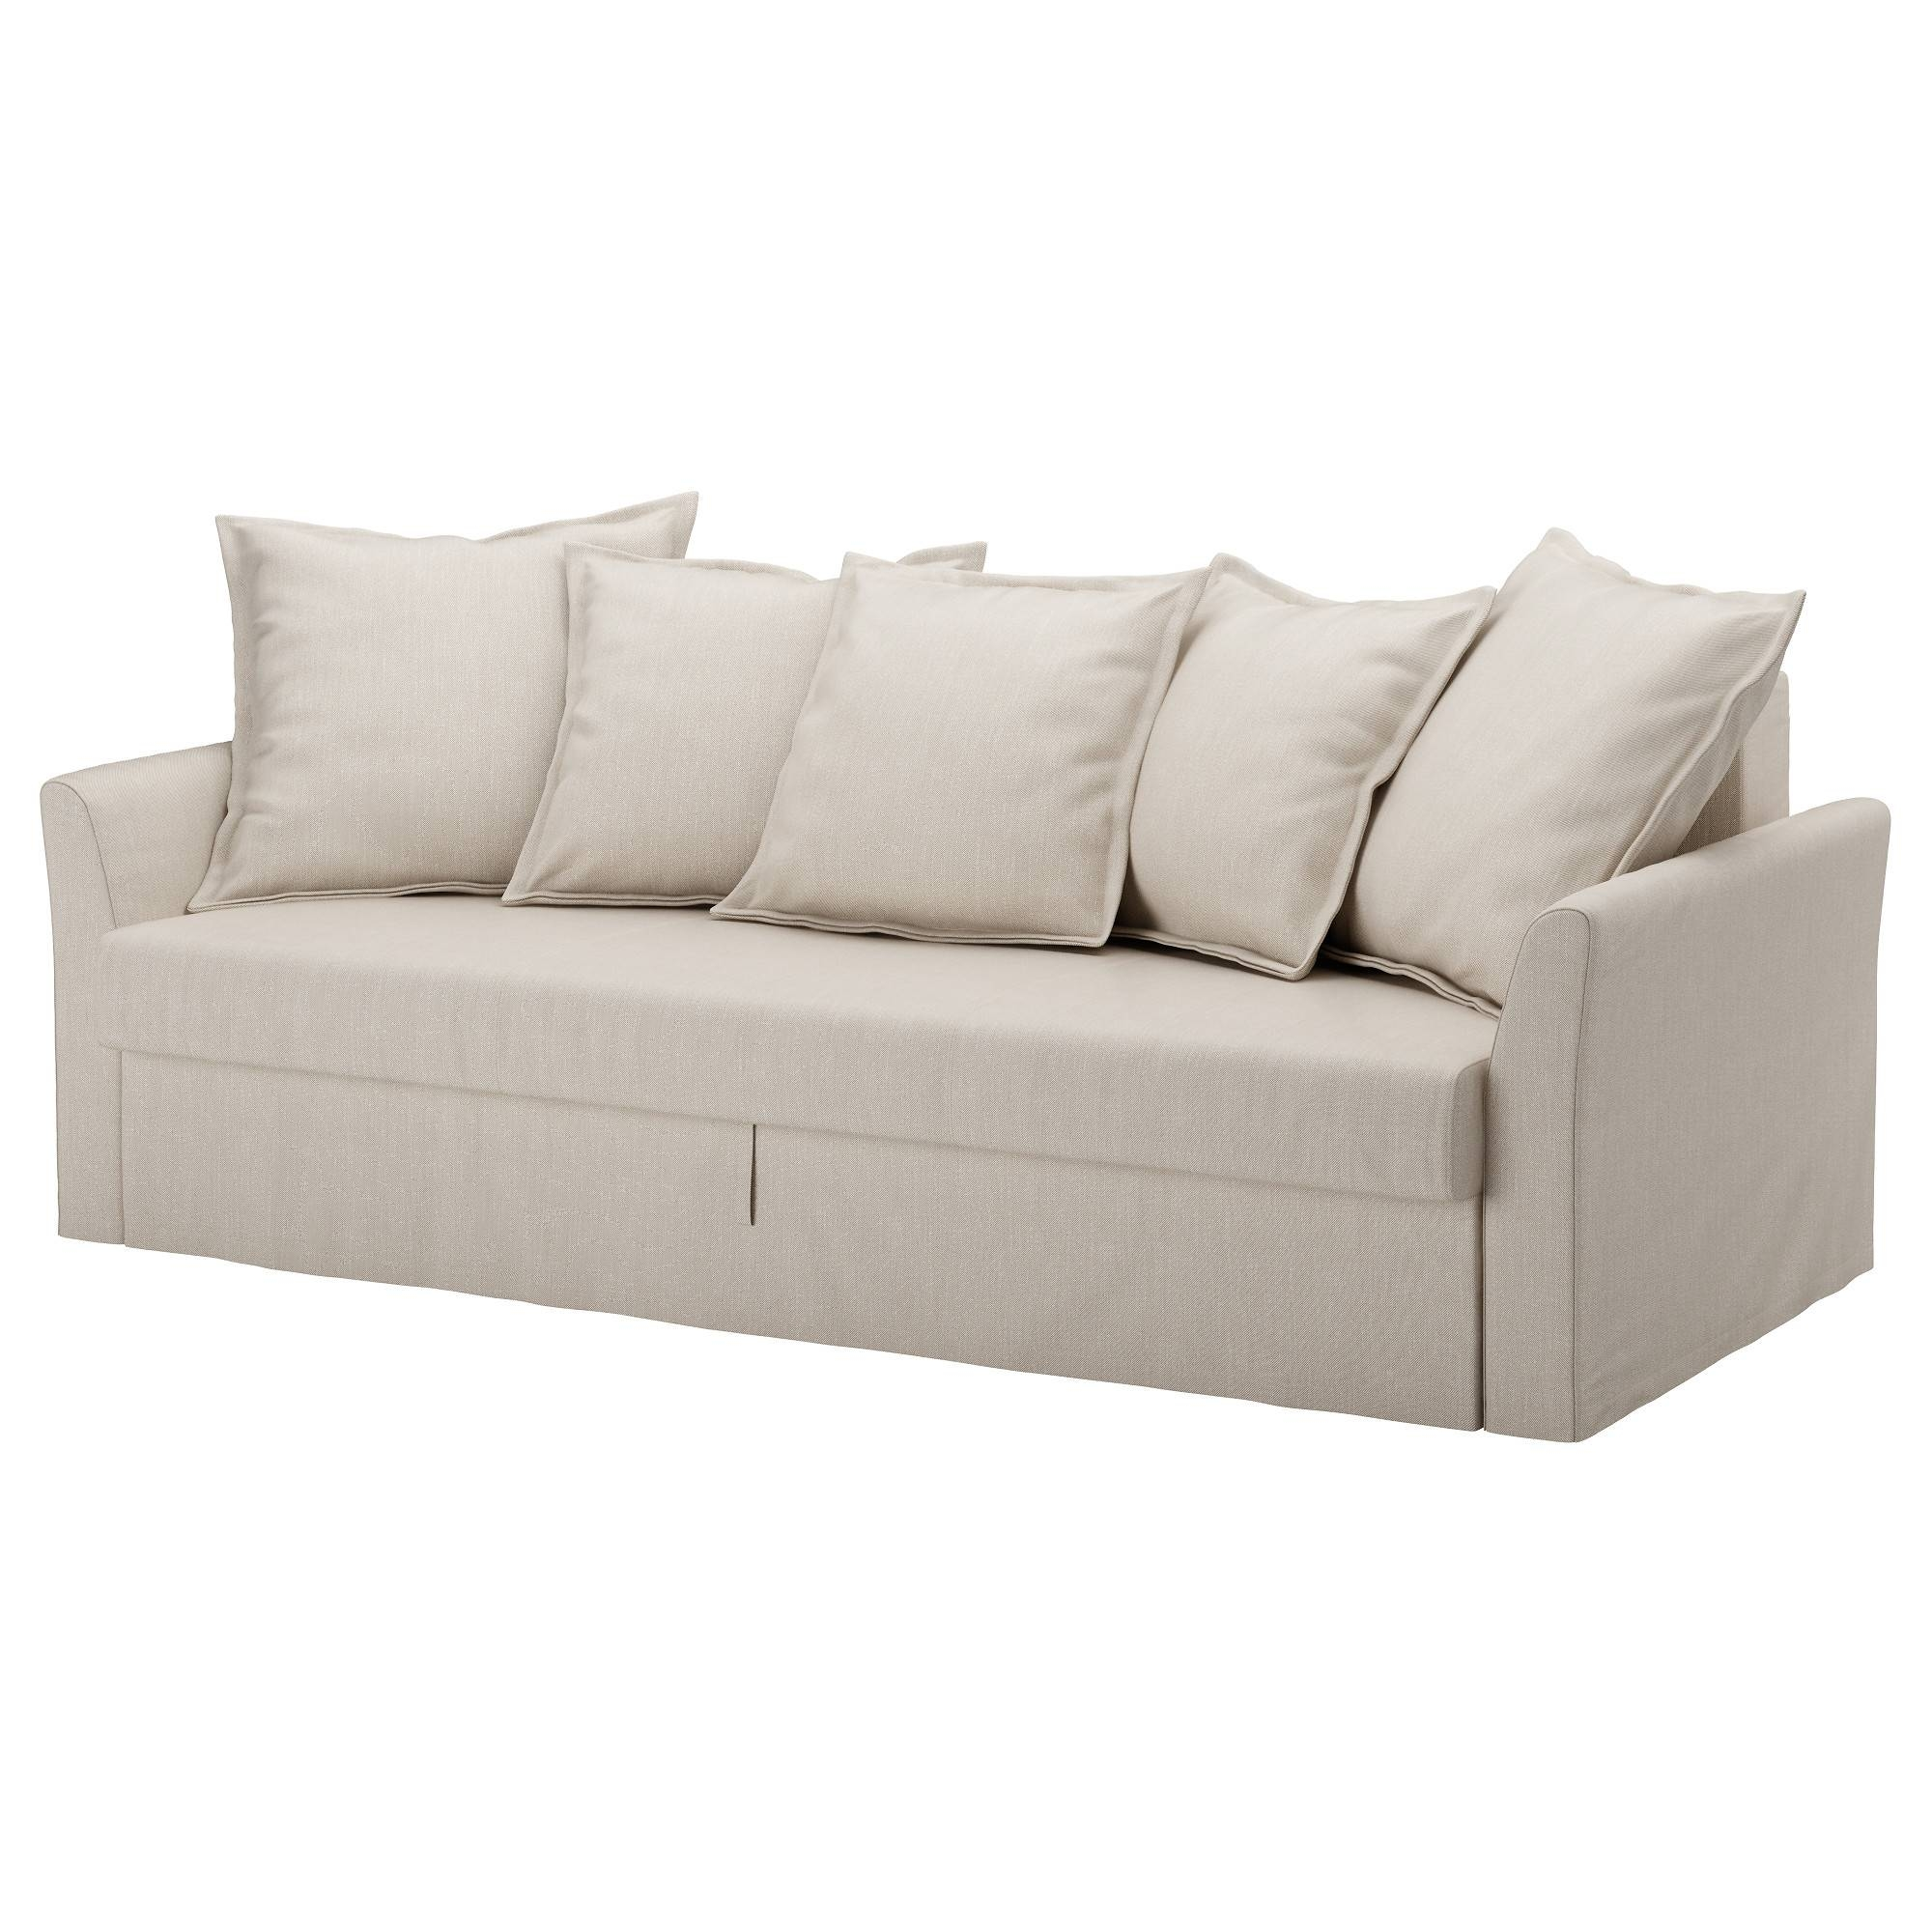 Sofa Beds & Futons - Ikea for Mini Sofa Sleepers (Image 17 of 30)